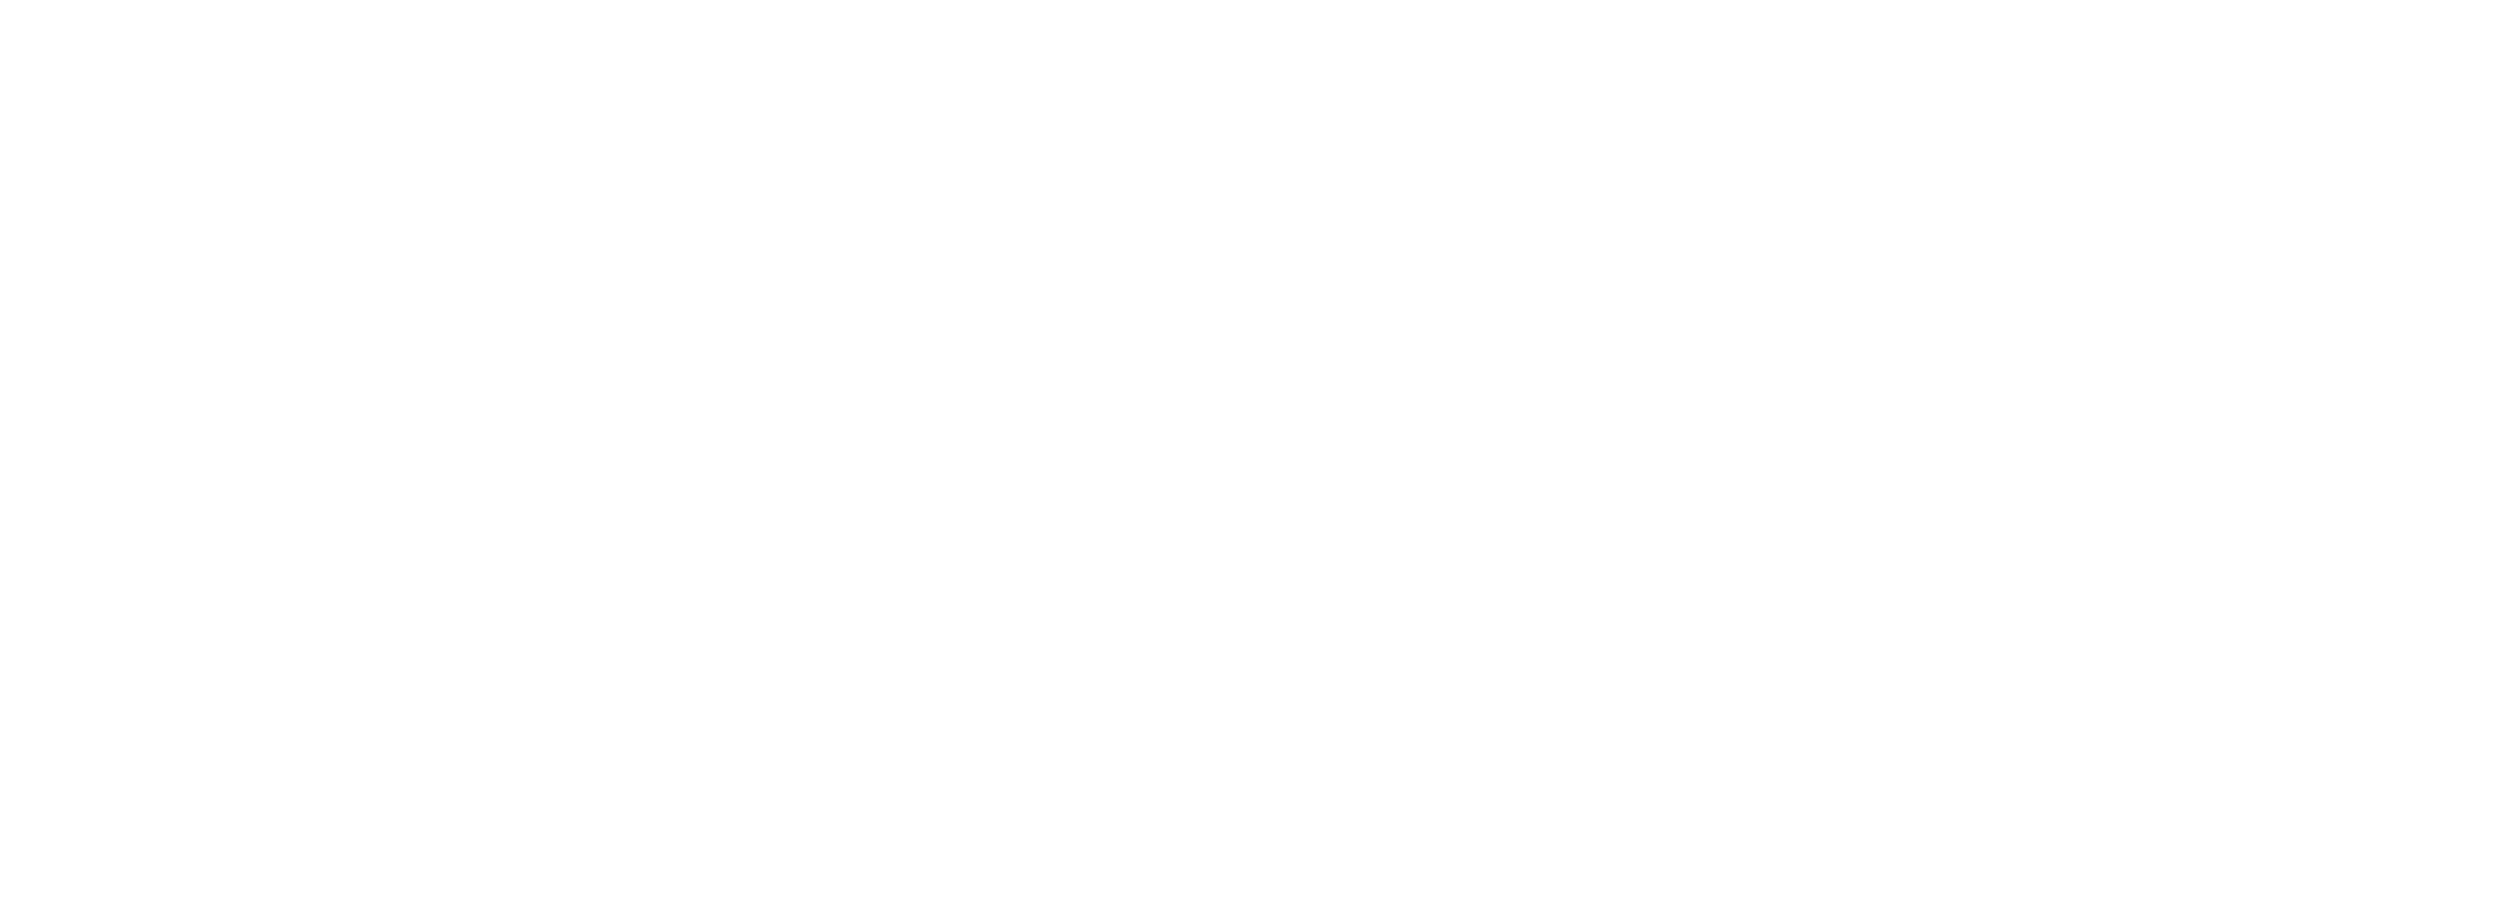 Andy Kerr Photography Logo.png